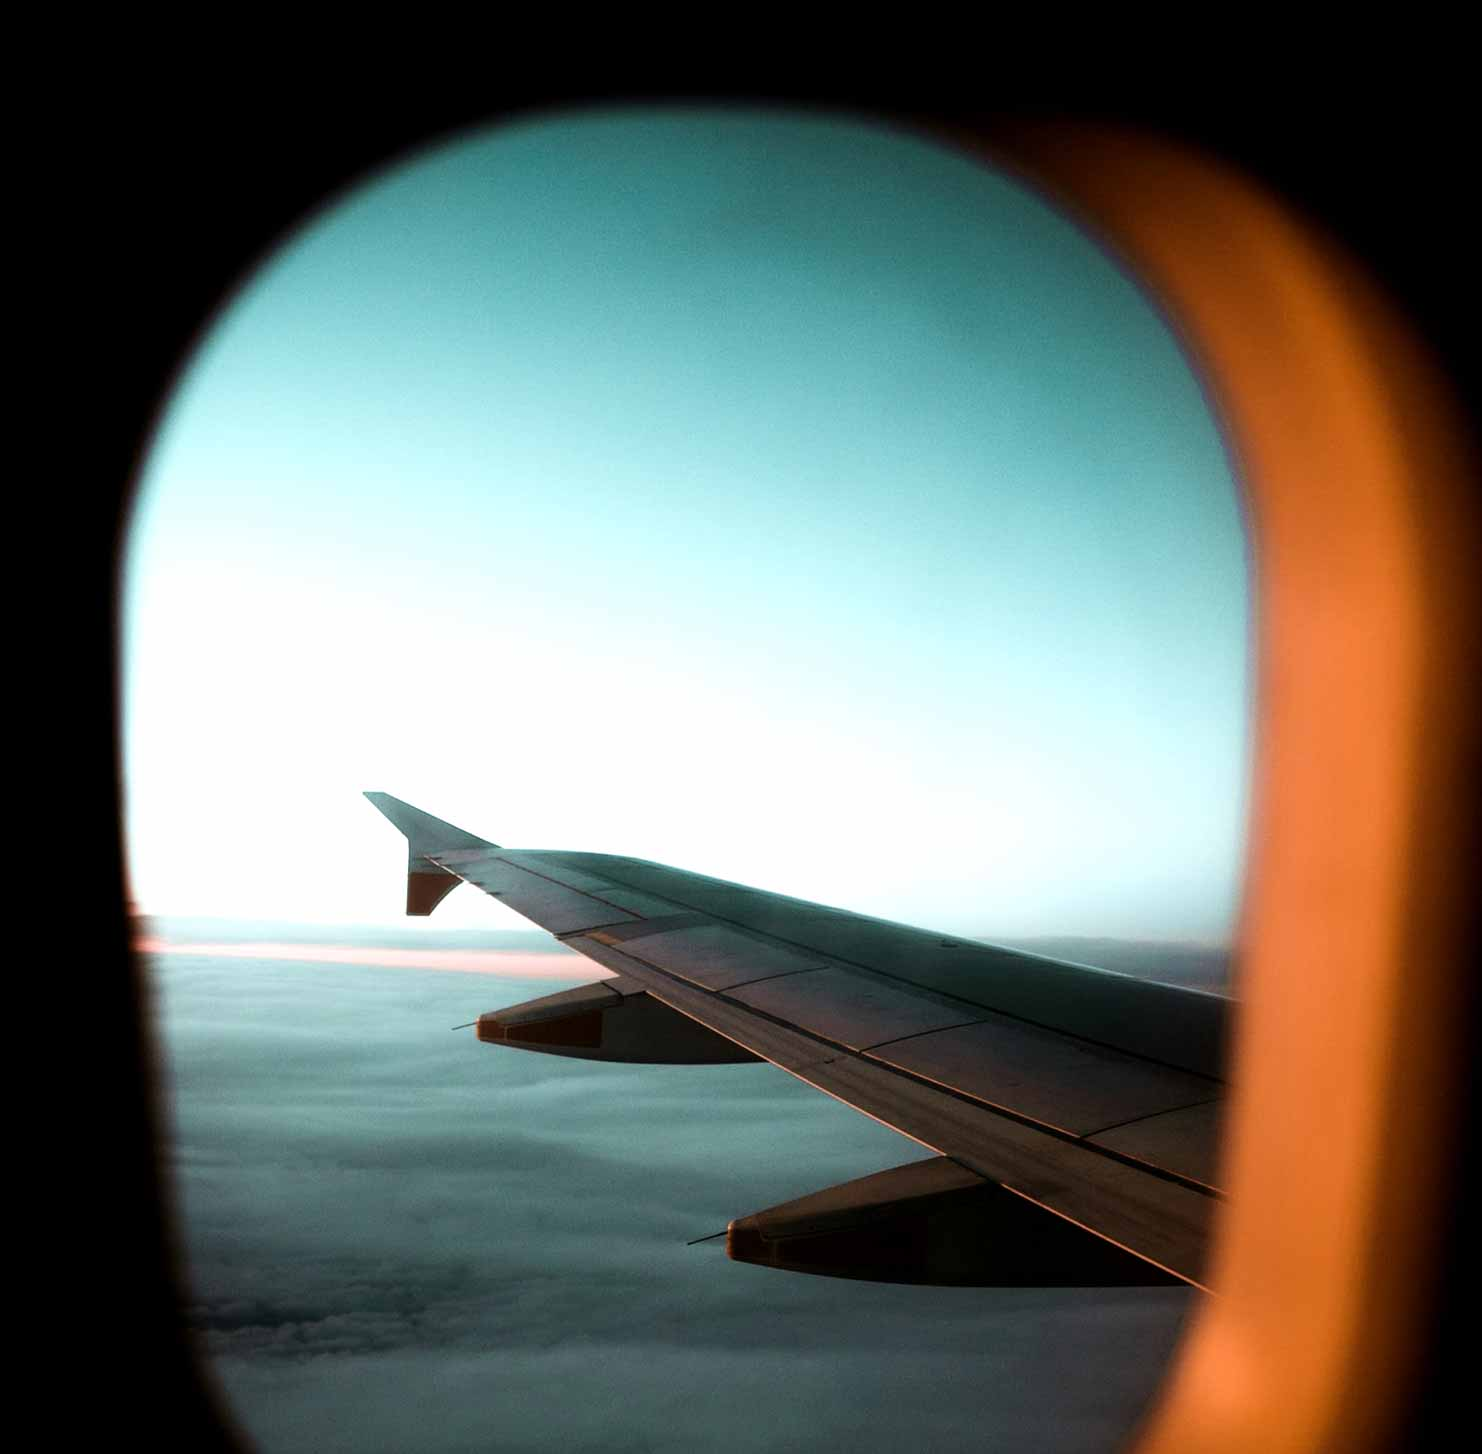 Looking at the wing of an aeroplane through the window